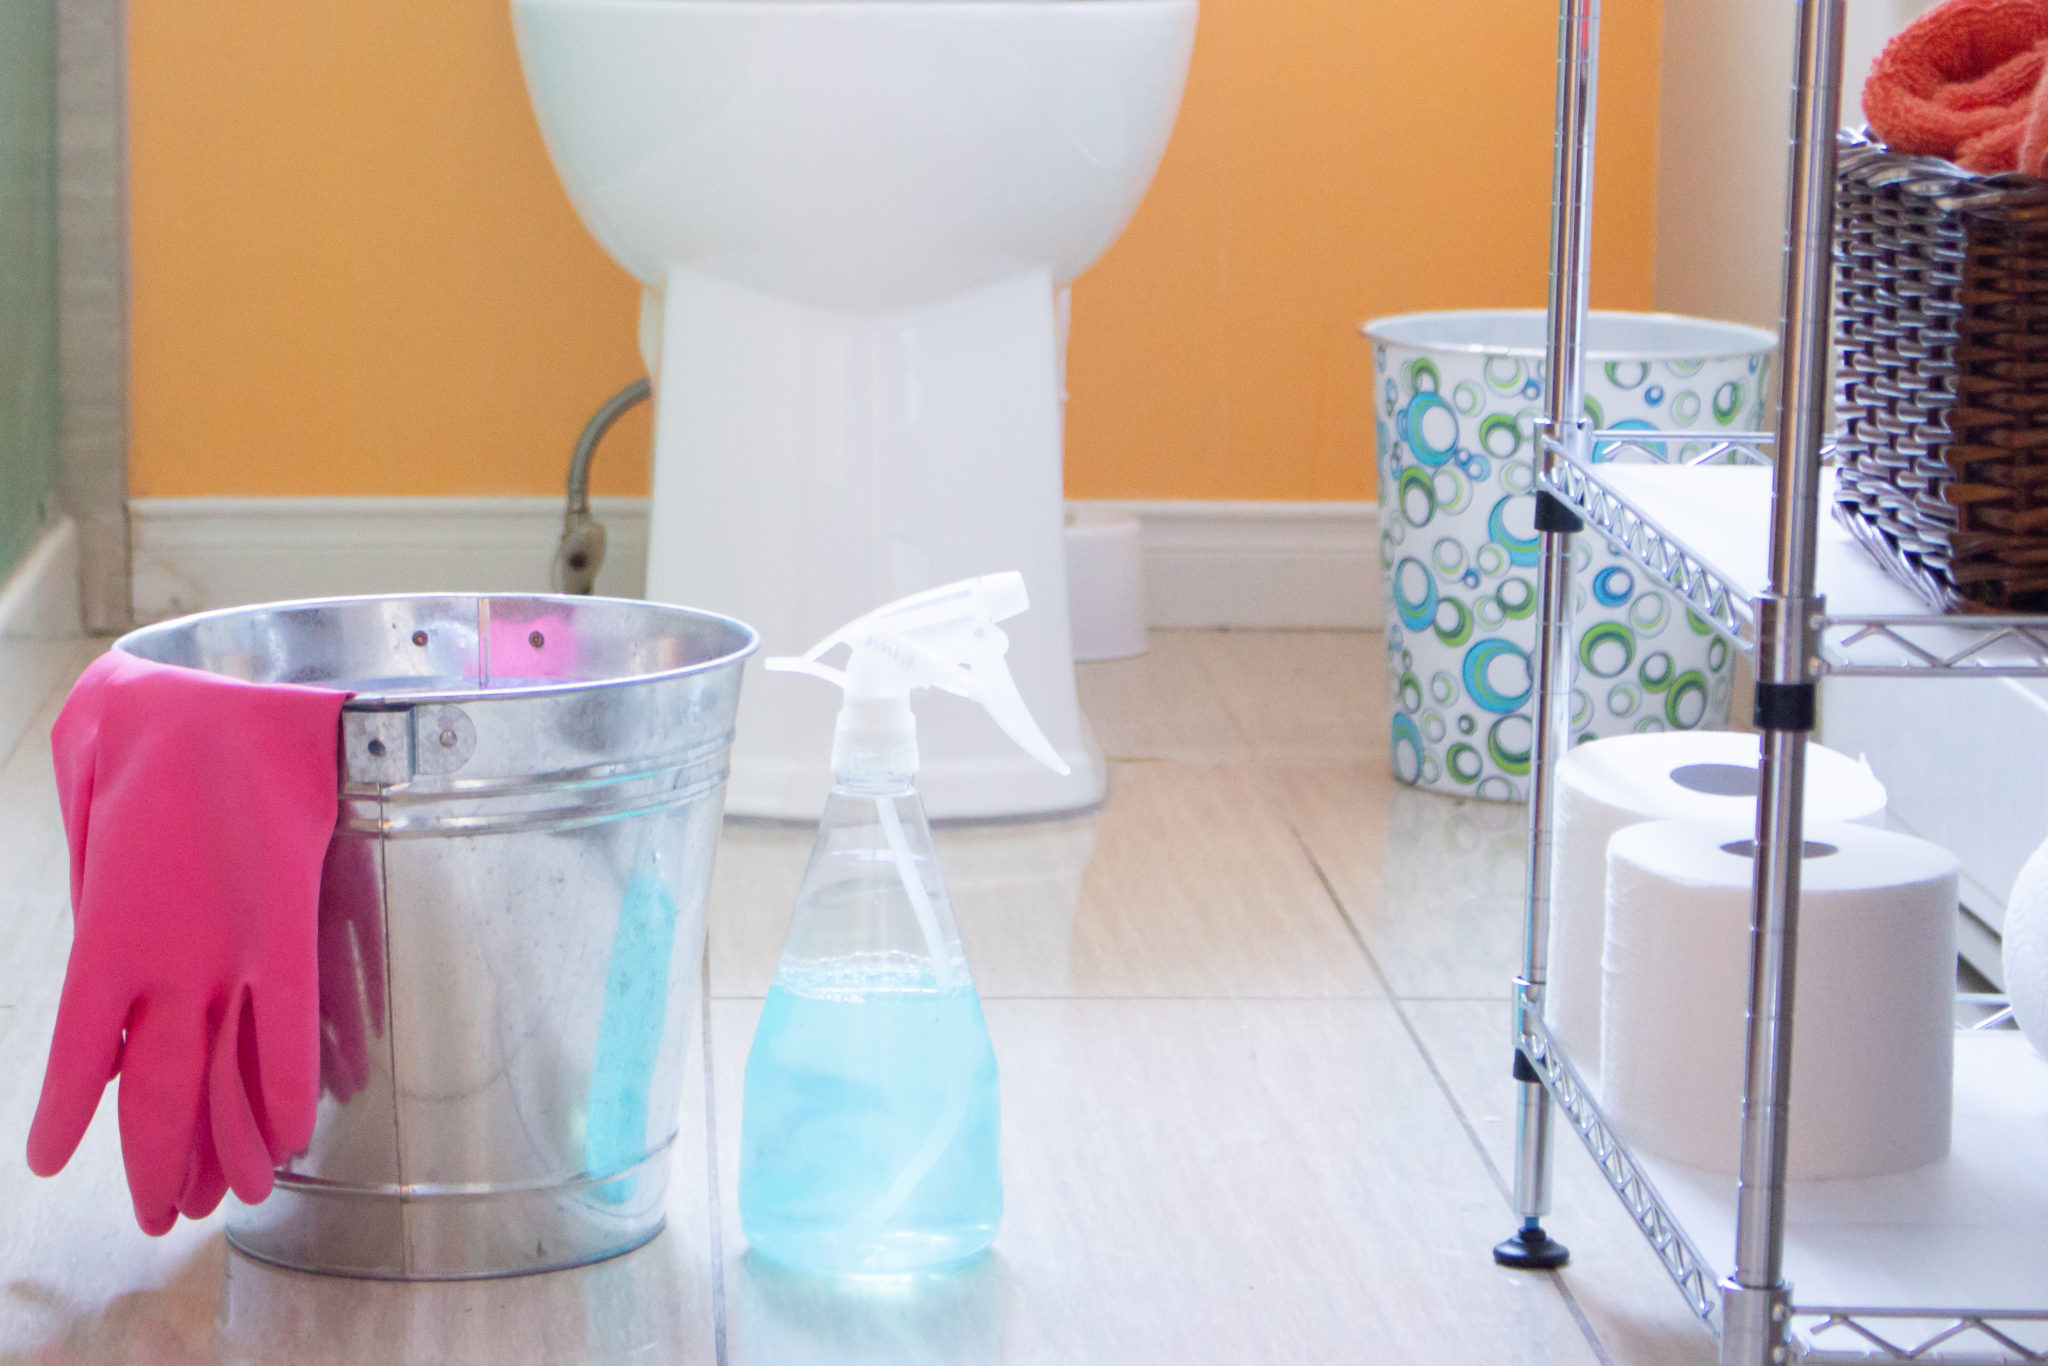 Tips On How To Tackle The Most Dreaded House Chore | American Standard Review